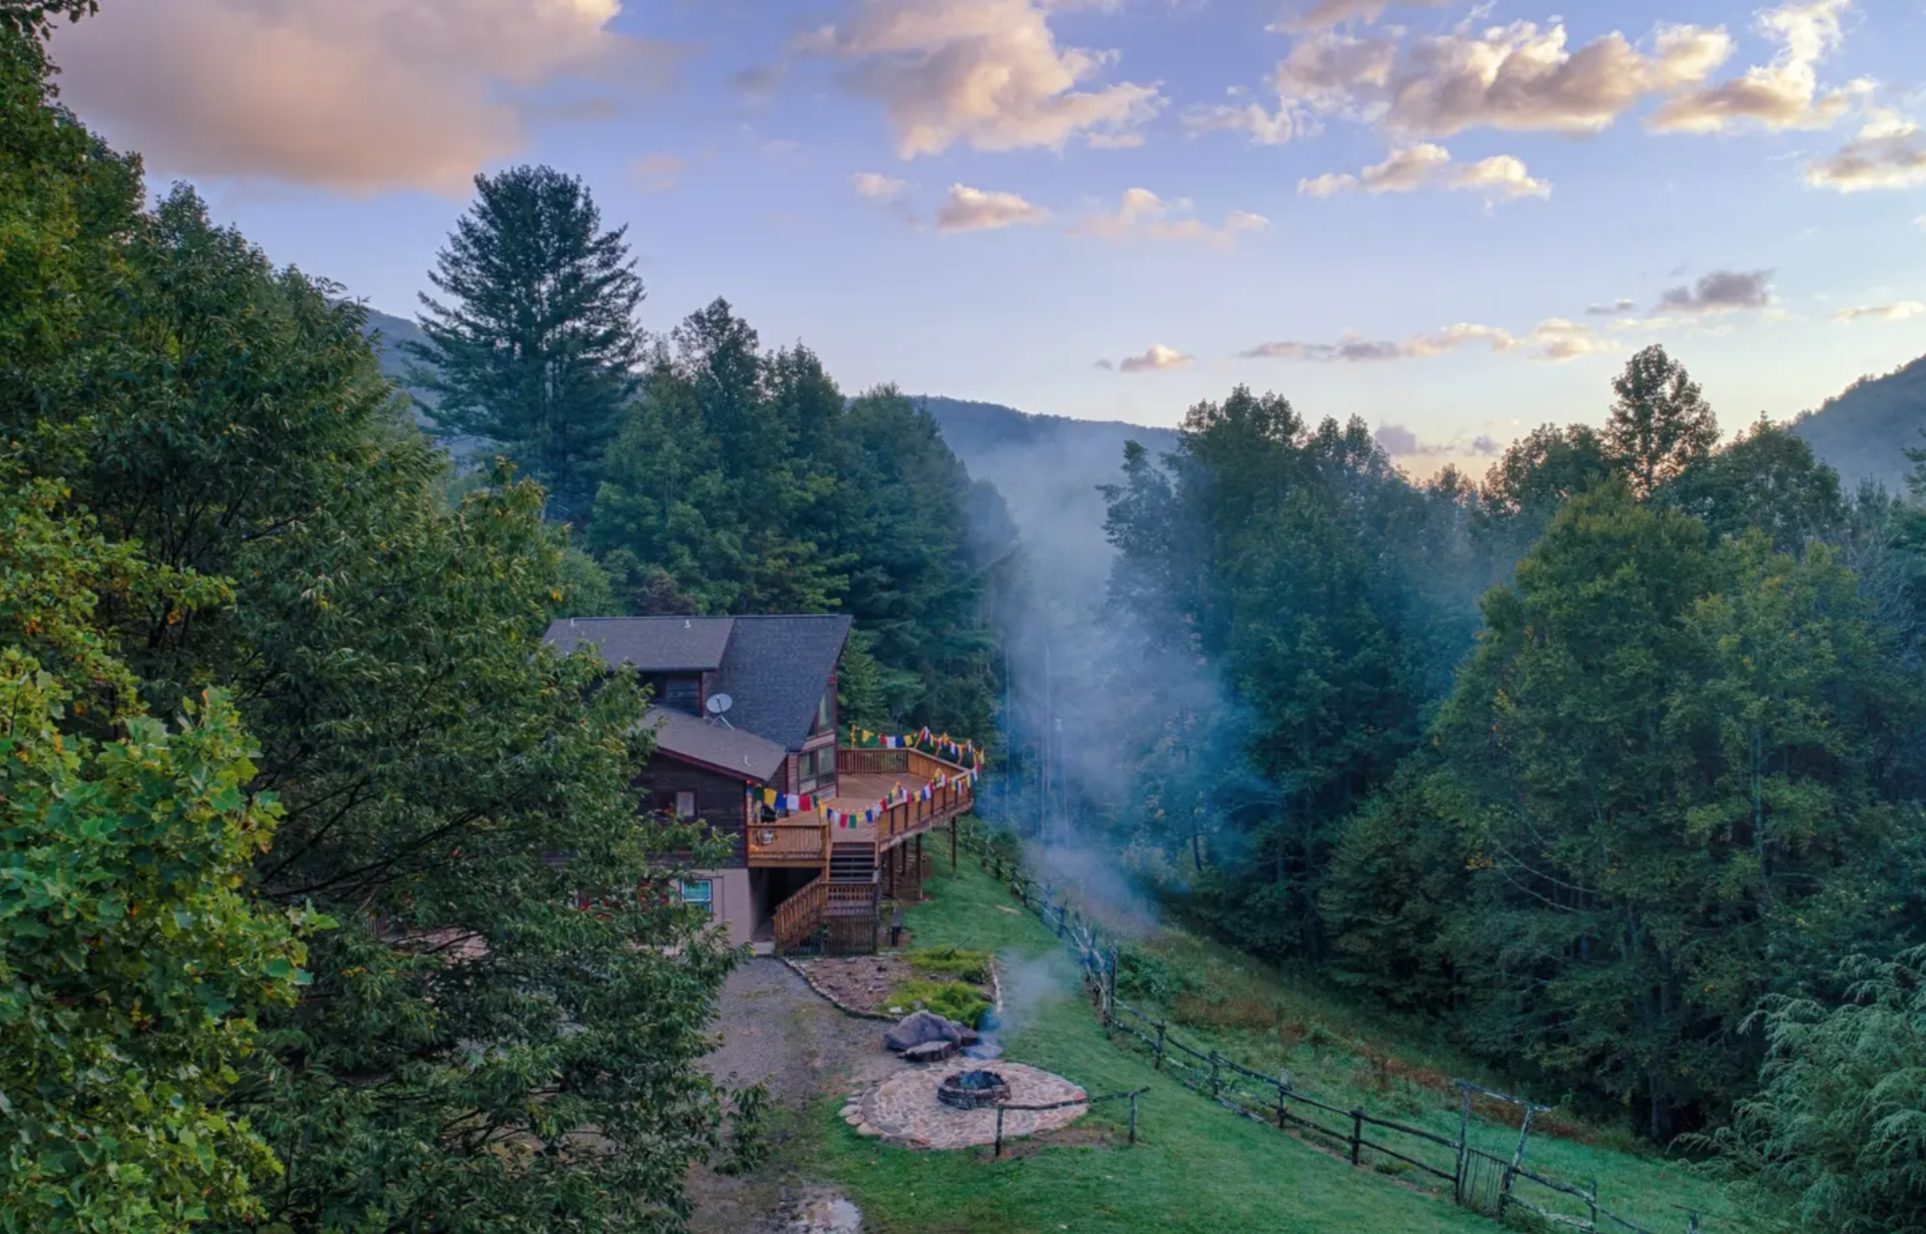 We'll be staying at a beautiful retreat center in the Blue Ridge Mountains, with more than enough room to gather together, and ample space to spread out. -